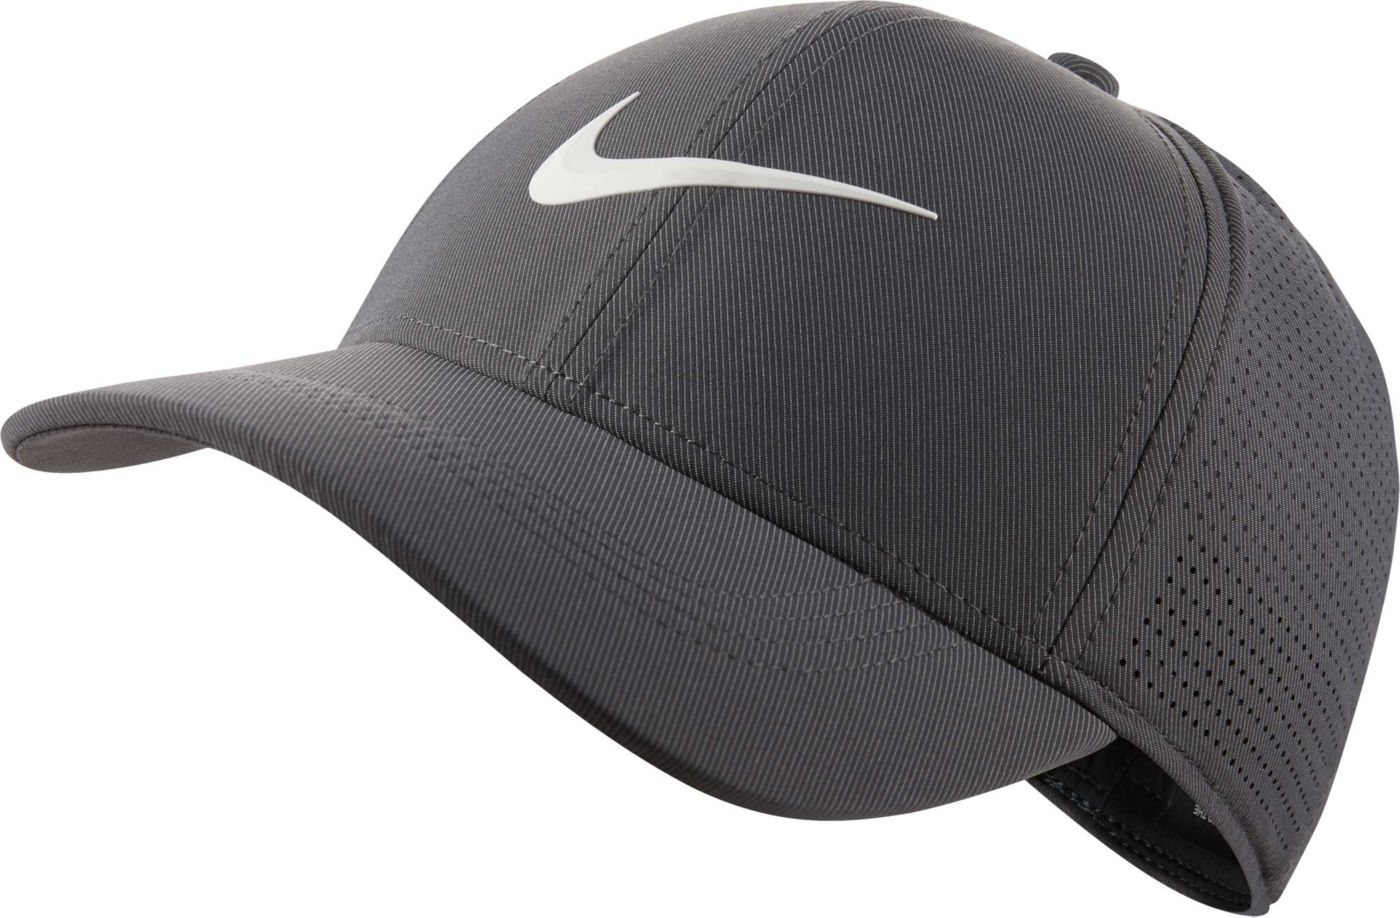 Nike 2018 AeroBill Legacy91 Perforated Hat